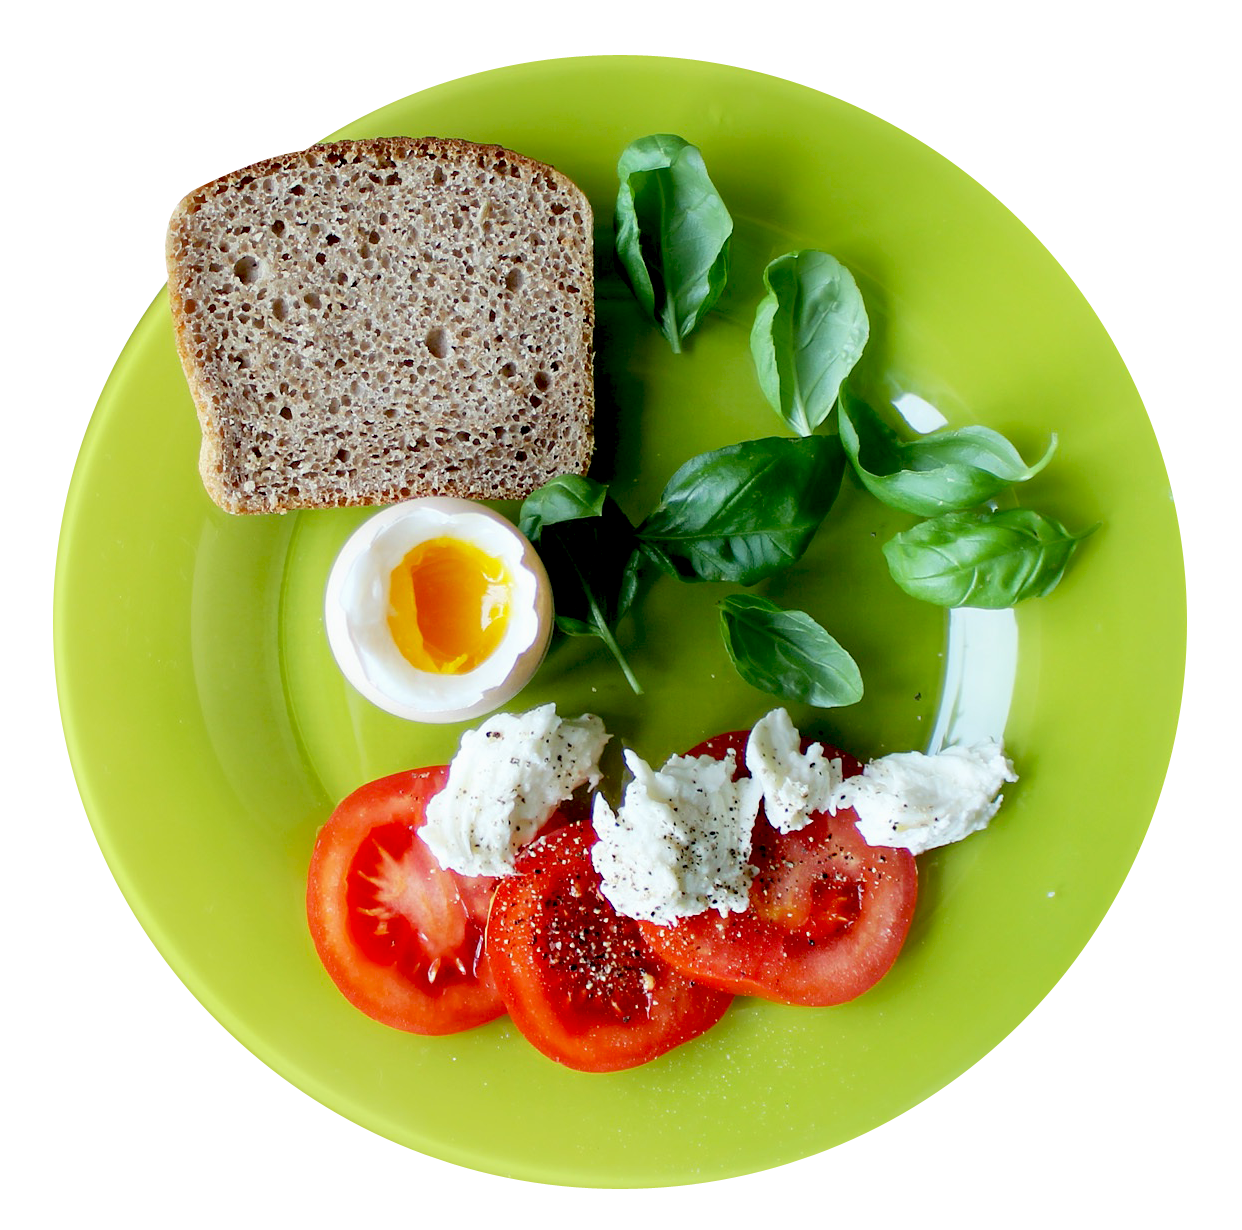 Png Plate Of Food - Png Plate Of Food Hdpng.com 1242, Transparent background PNG HD thumbnail